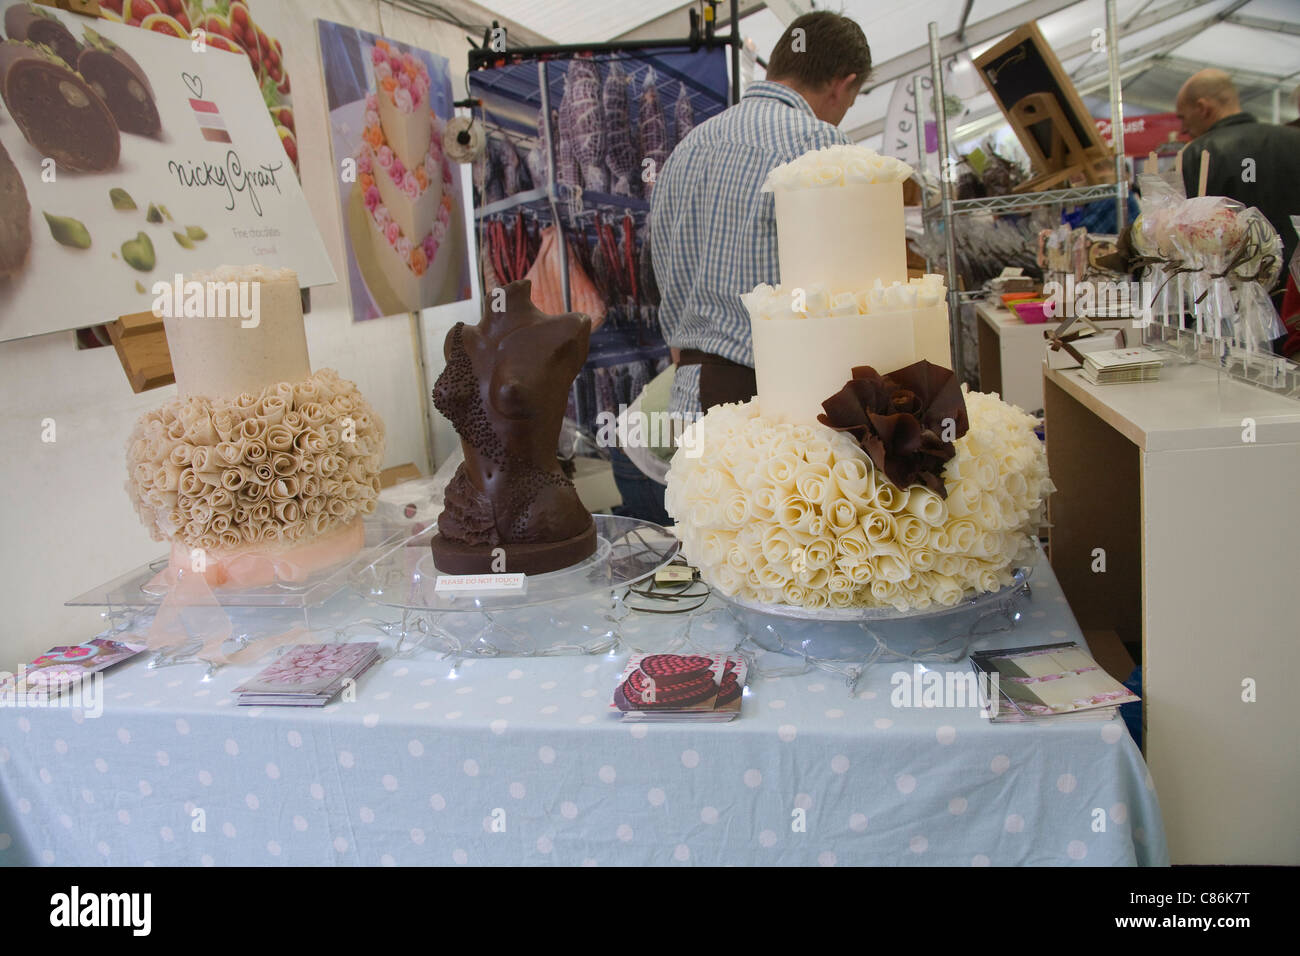 Cornwall England UK Chocolate sculptures displayed on Market stall of locally produced hand crafted chocolate products - Stock Image